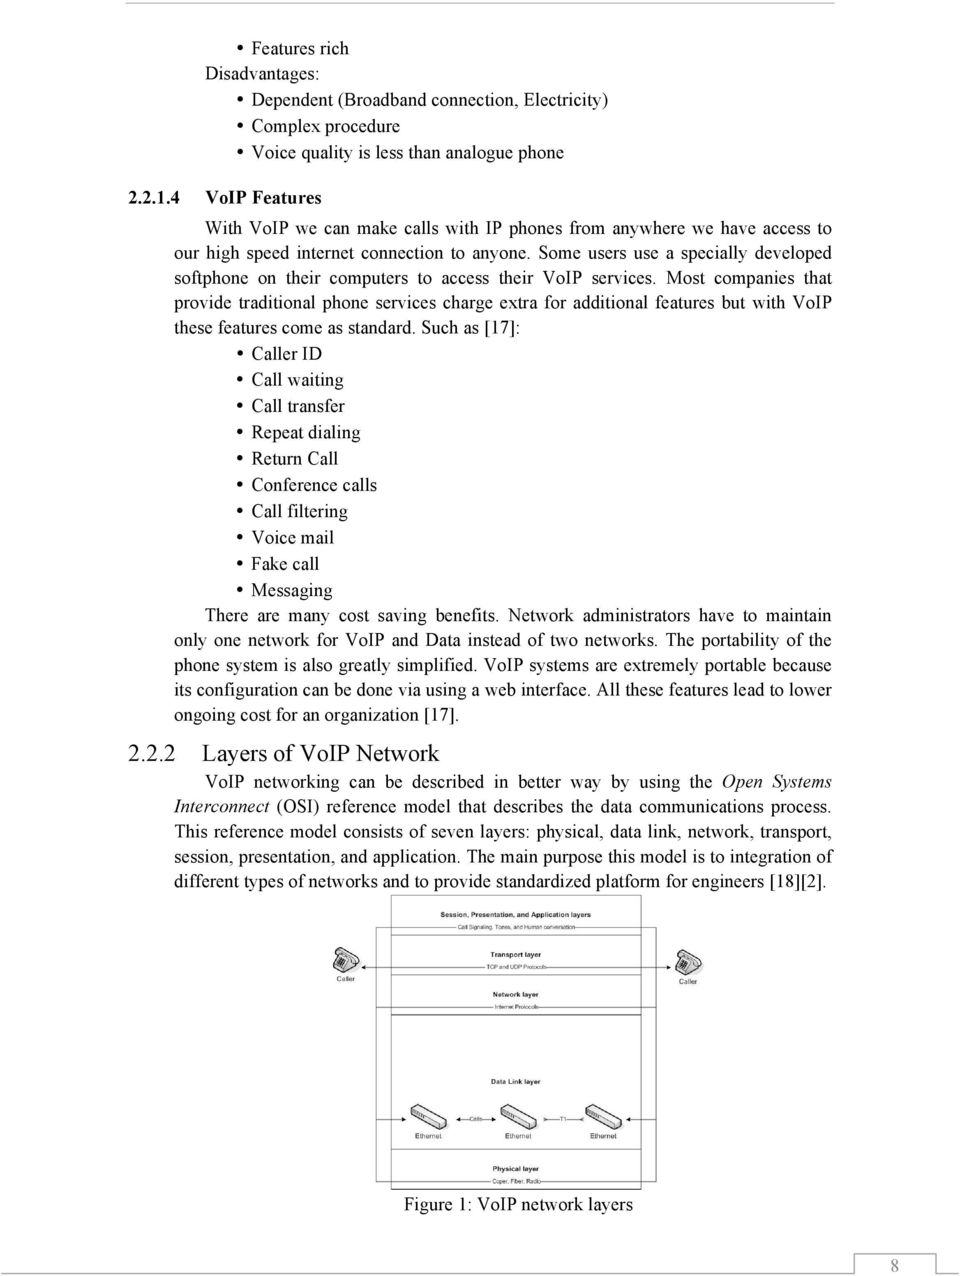 OPNET Analysis of VoIP over MPLS VPN - PDF